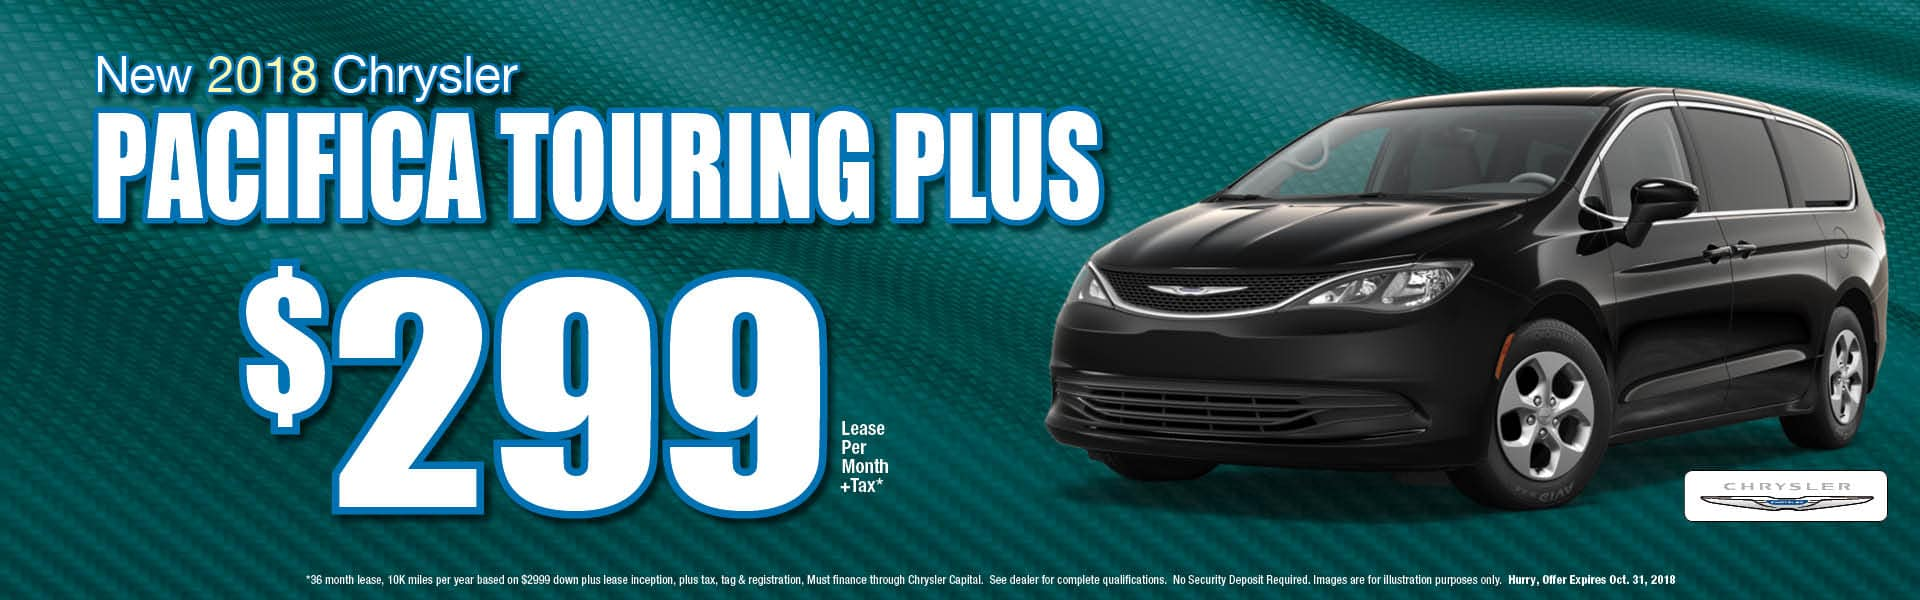 Pacifica Touring Plus $299 Lease